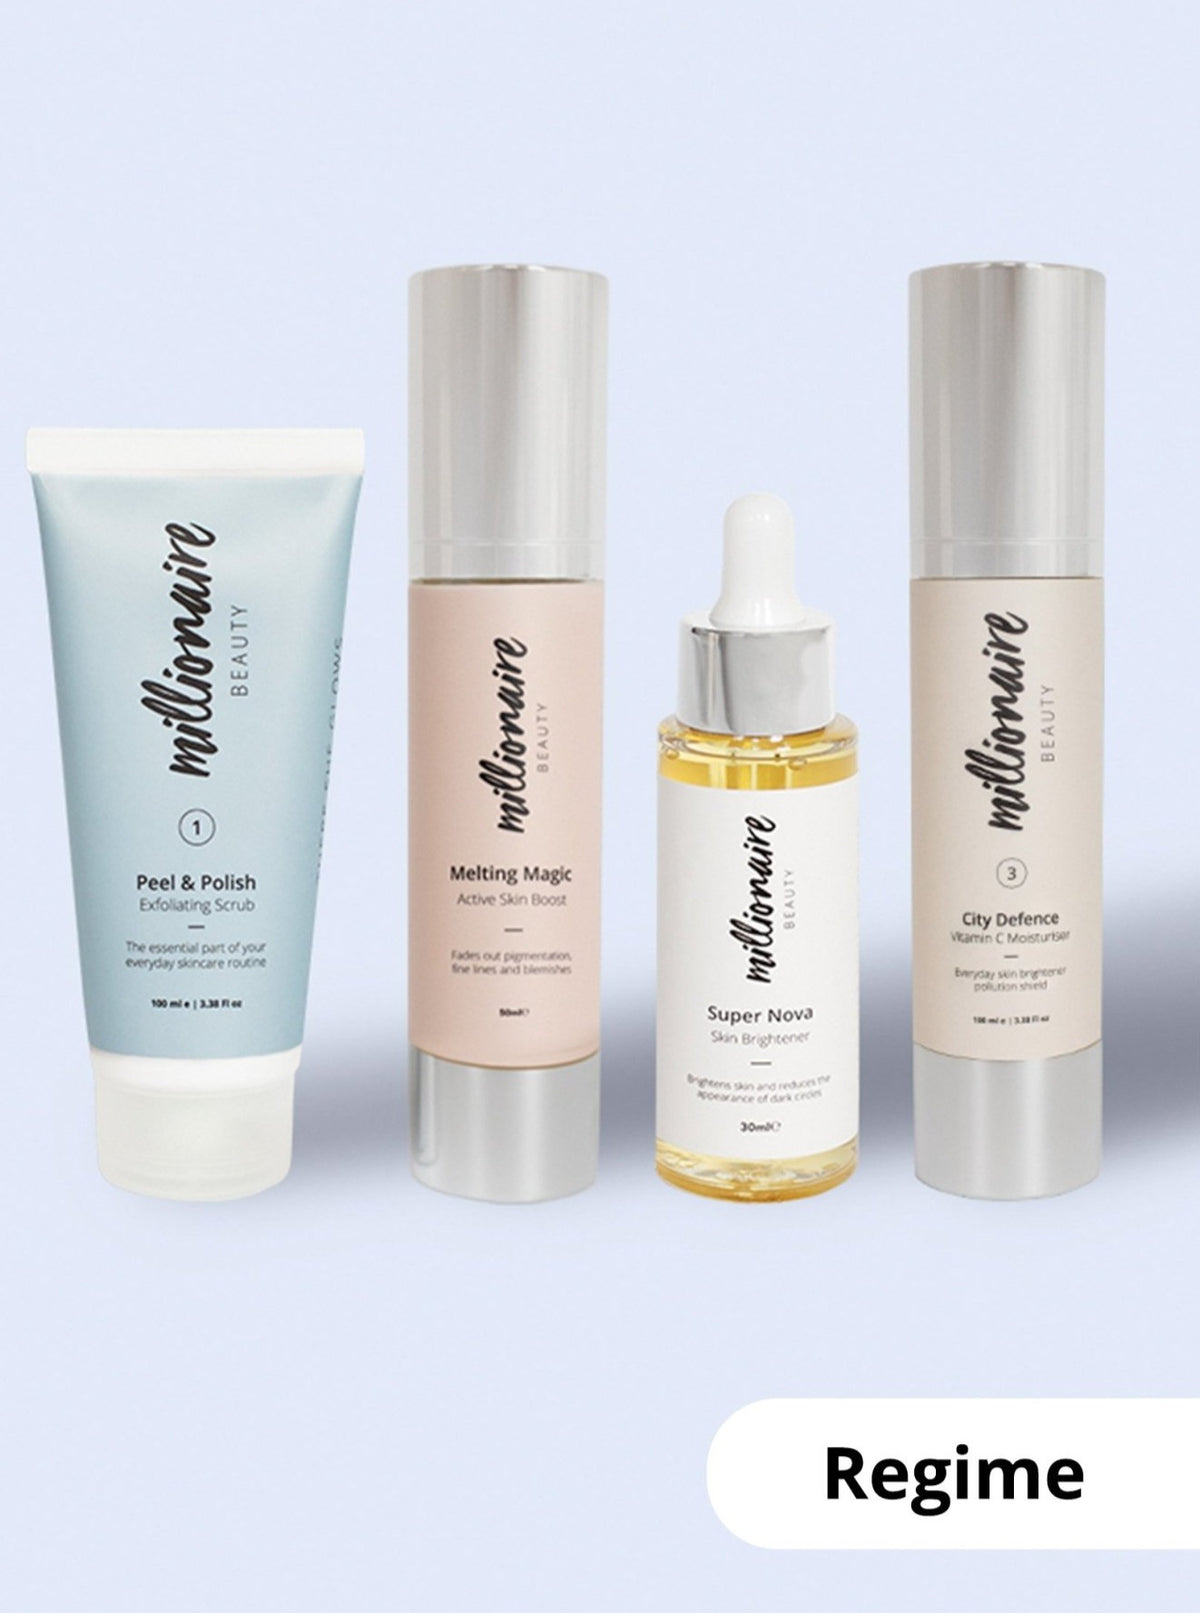 Hyperpigmentation Deluxe Bundle - reduces pigmentation and evens out skin tone, , Millionaire Beauty, Skincare routine, paulas choice, cult beauty, skincare bundle, face serums, night time skincare routine, Morning skincare routine